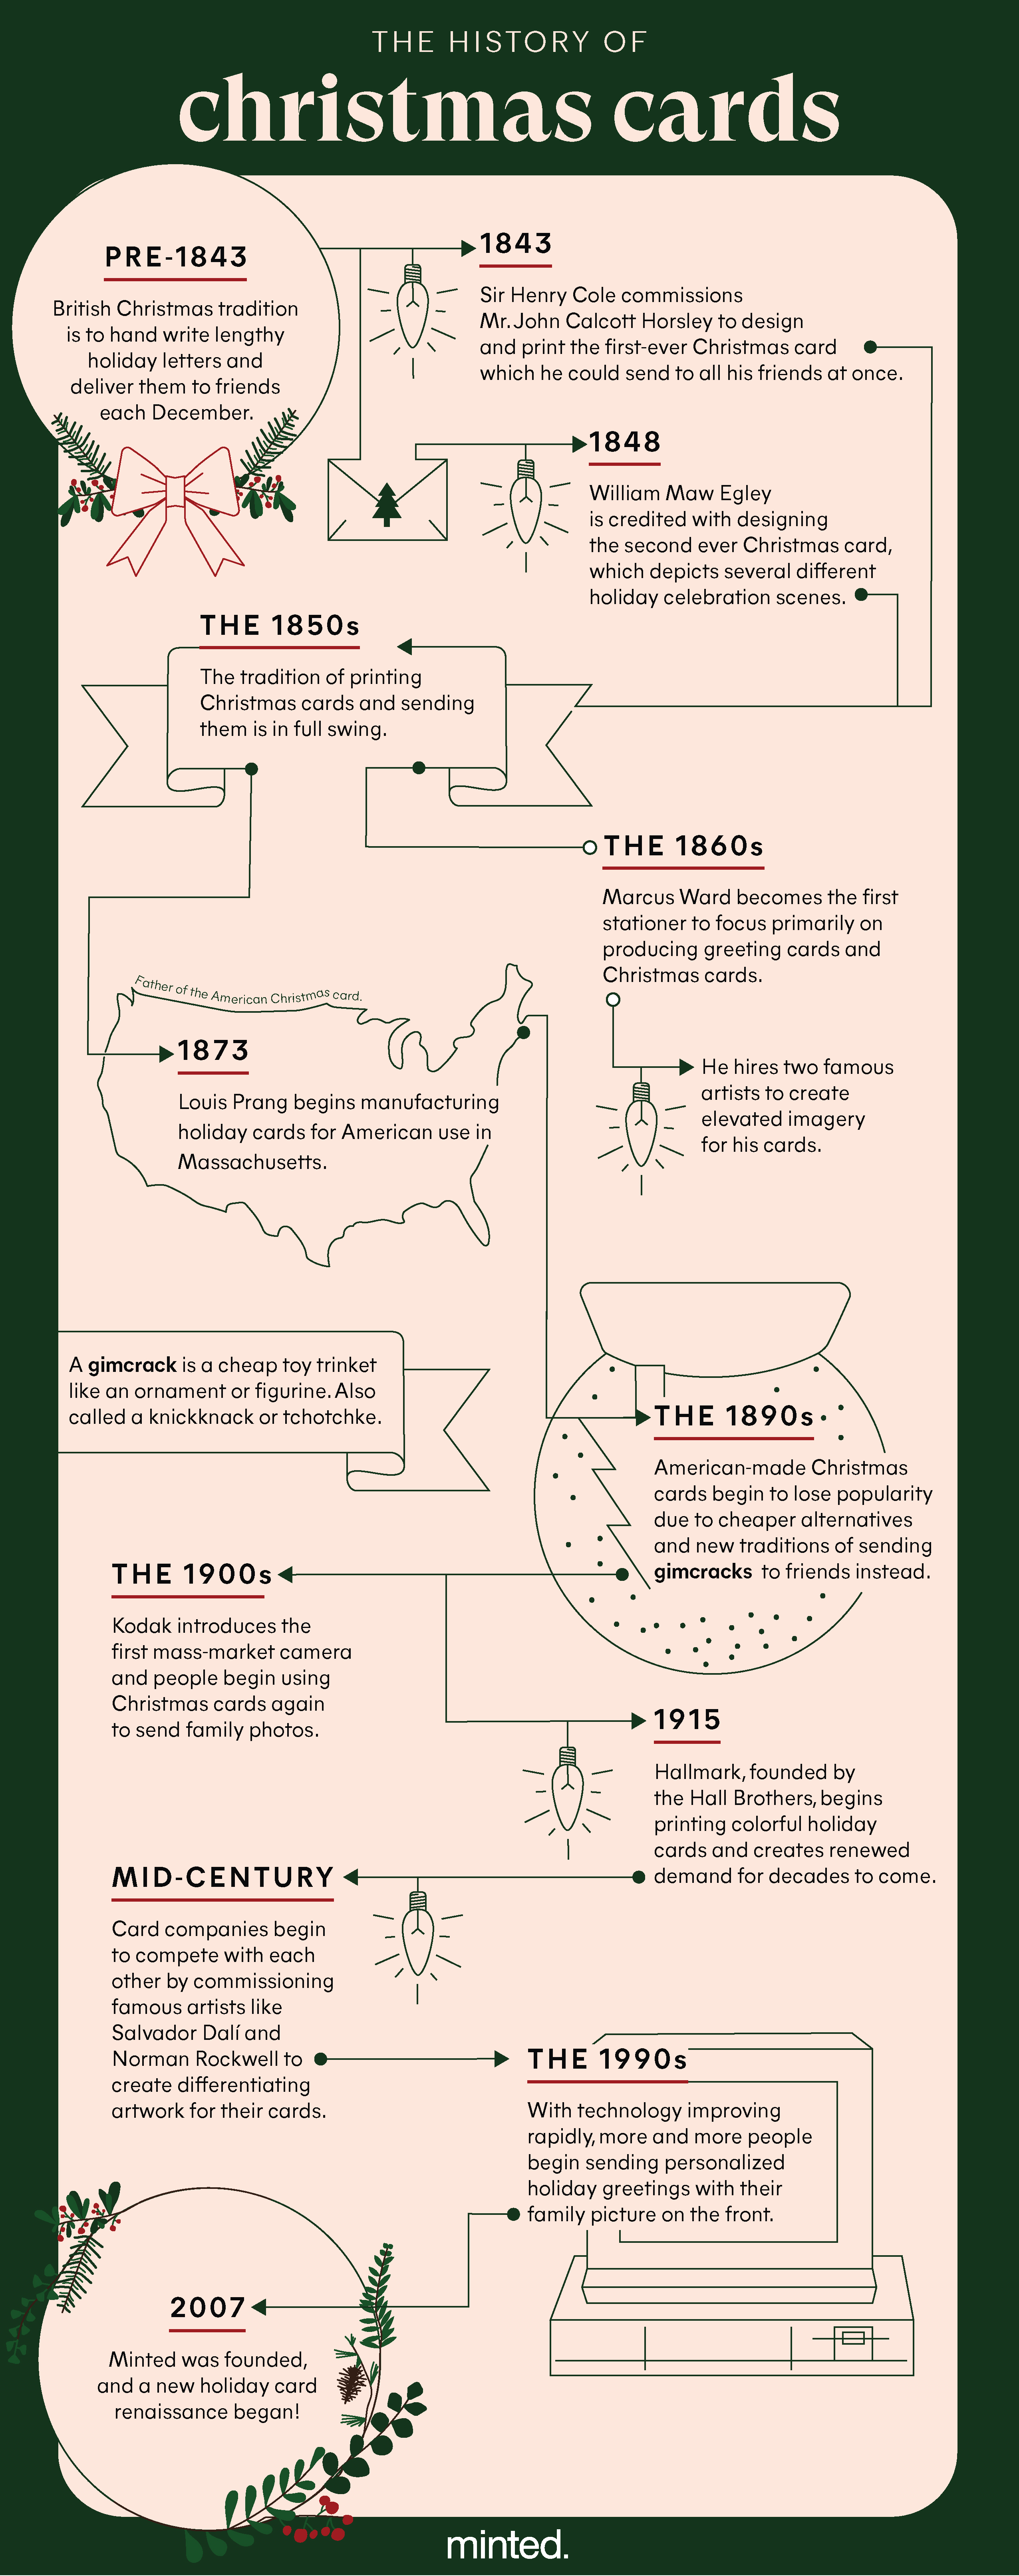 history of Christmas cards infographic